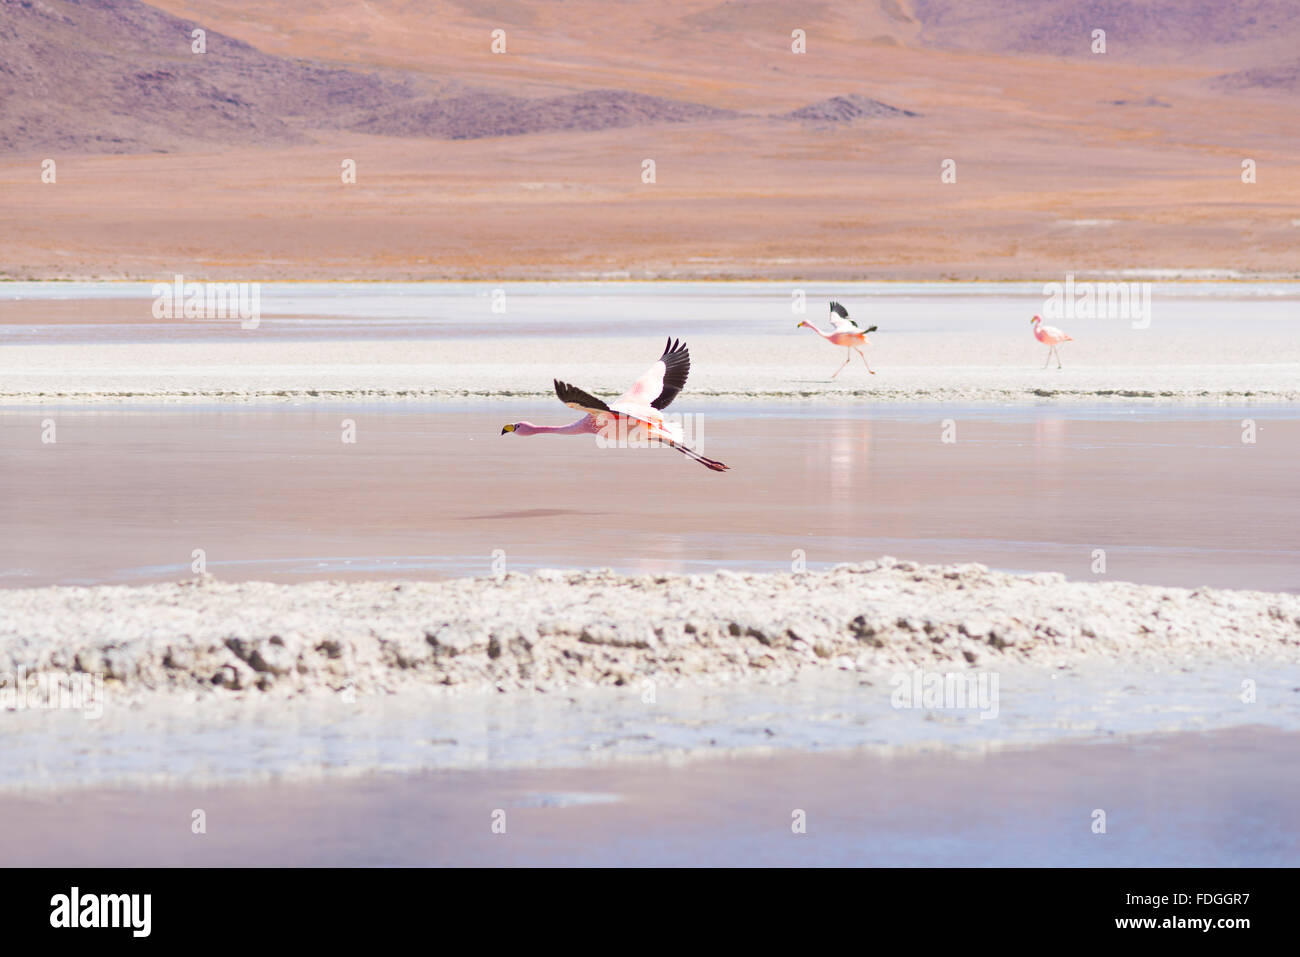 Pink flamingo flying over 'Laguna Hedionda' (eng. Hedionda Lake), among the most scenic travel destination - Stock Image